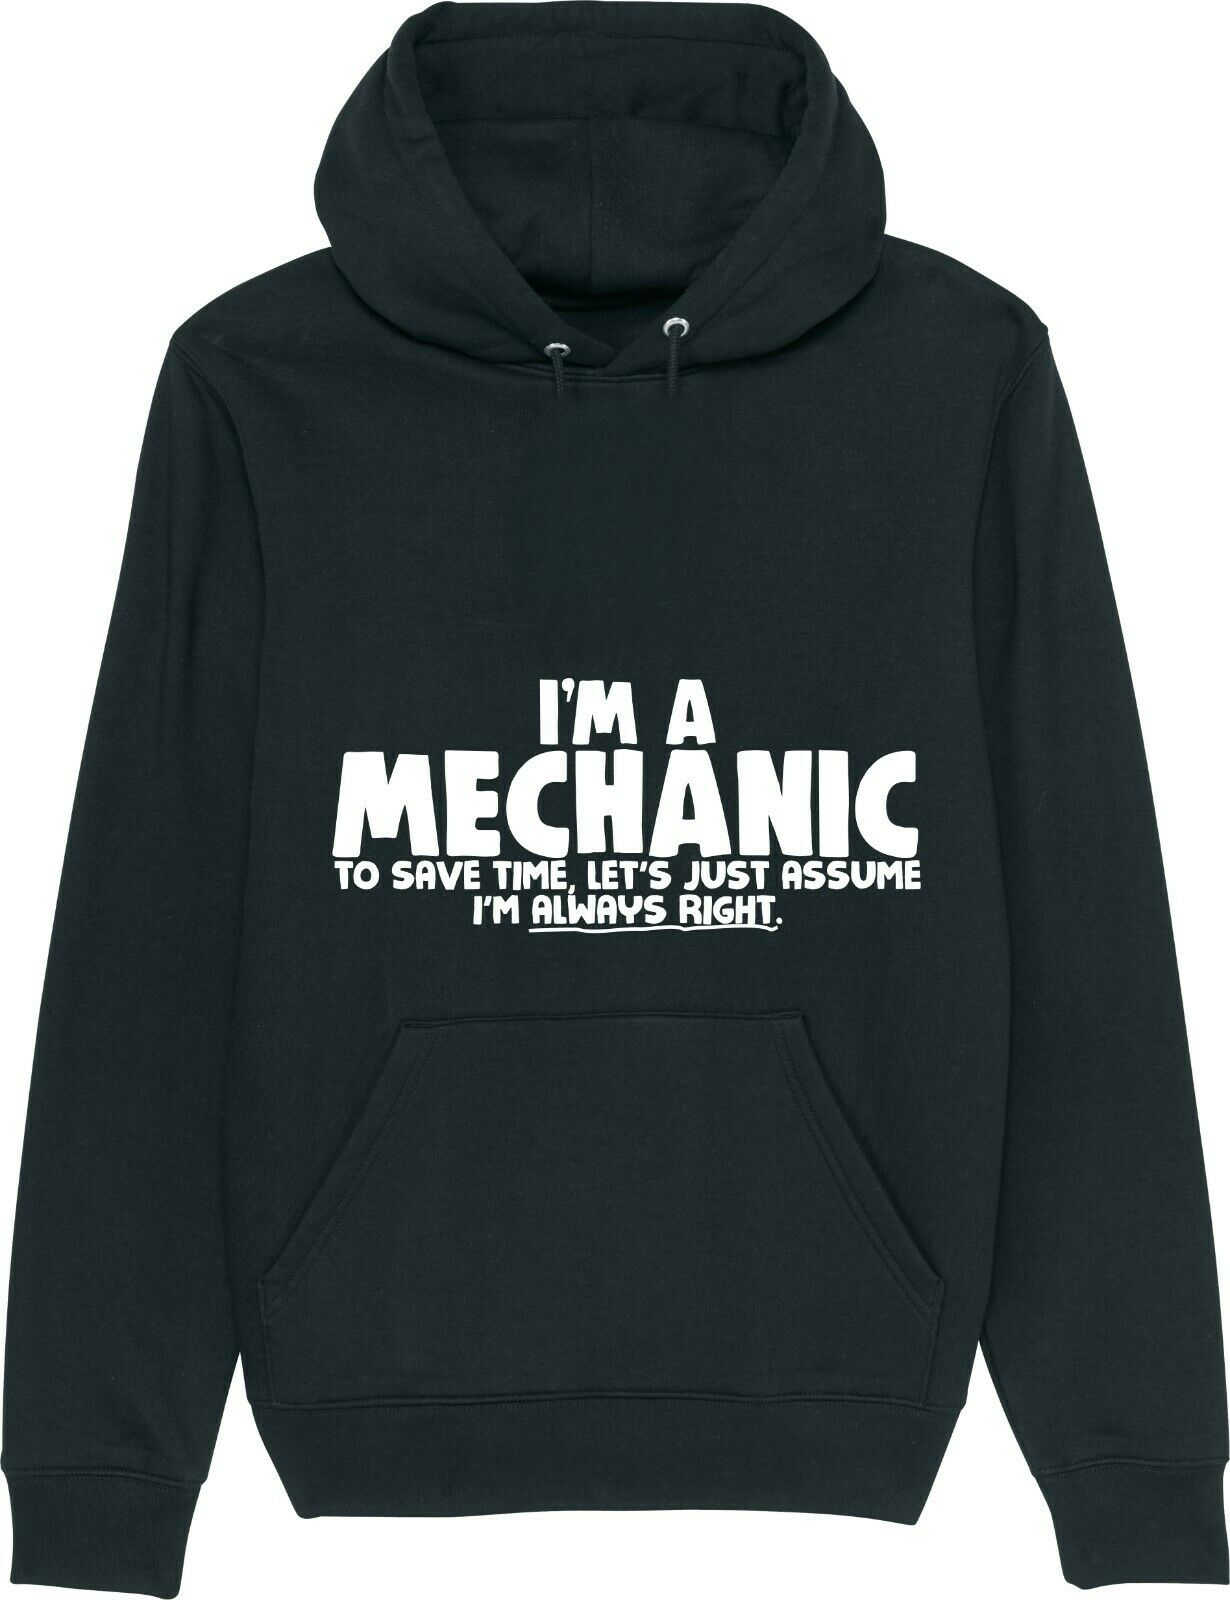 I'm A MECHANIC - Let's Just Assume I'm Right - Motor Garage Hoodie